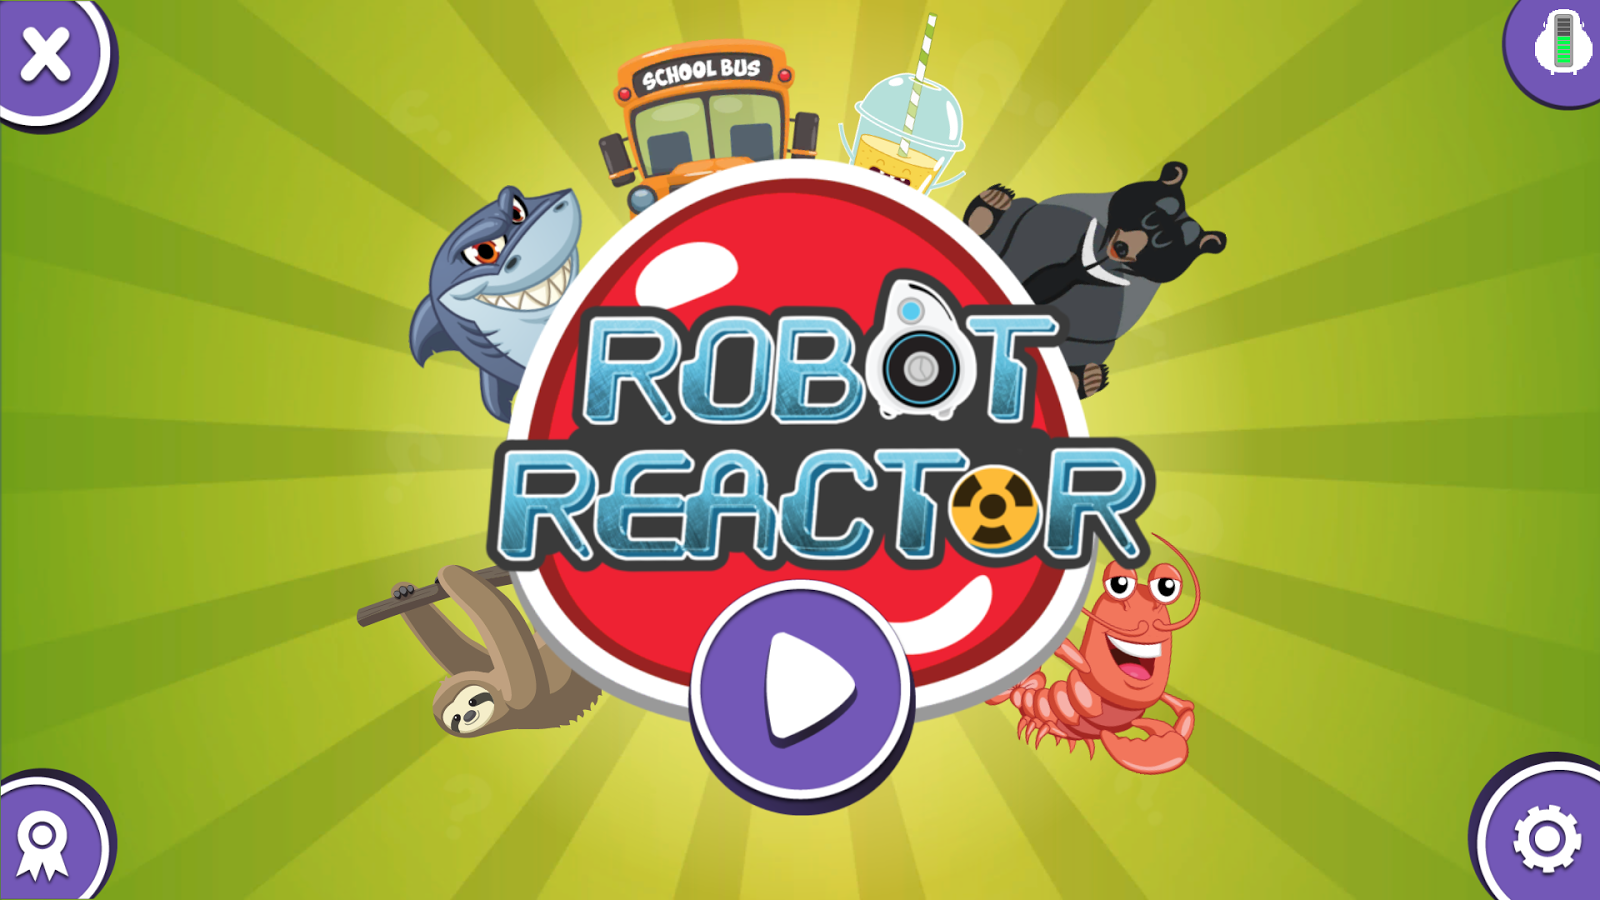 Download Miko S Robot Reactor 3 2 19 APK Android